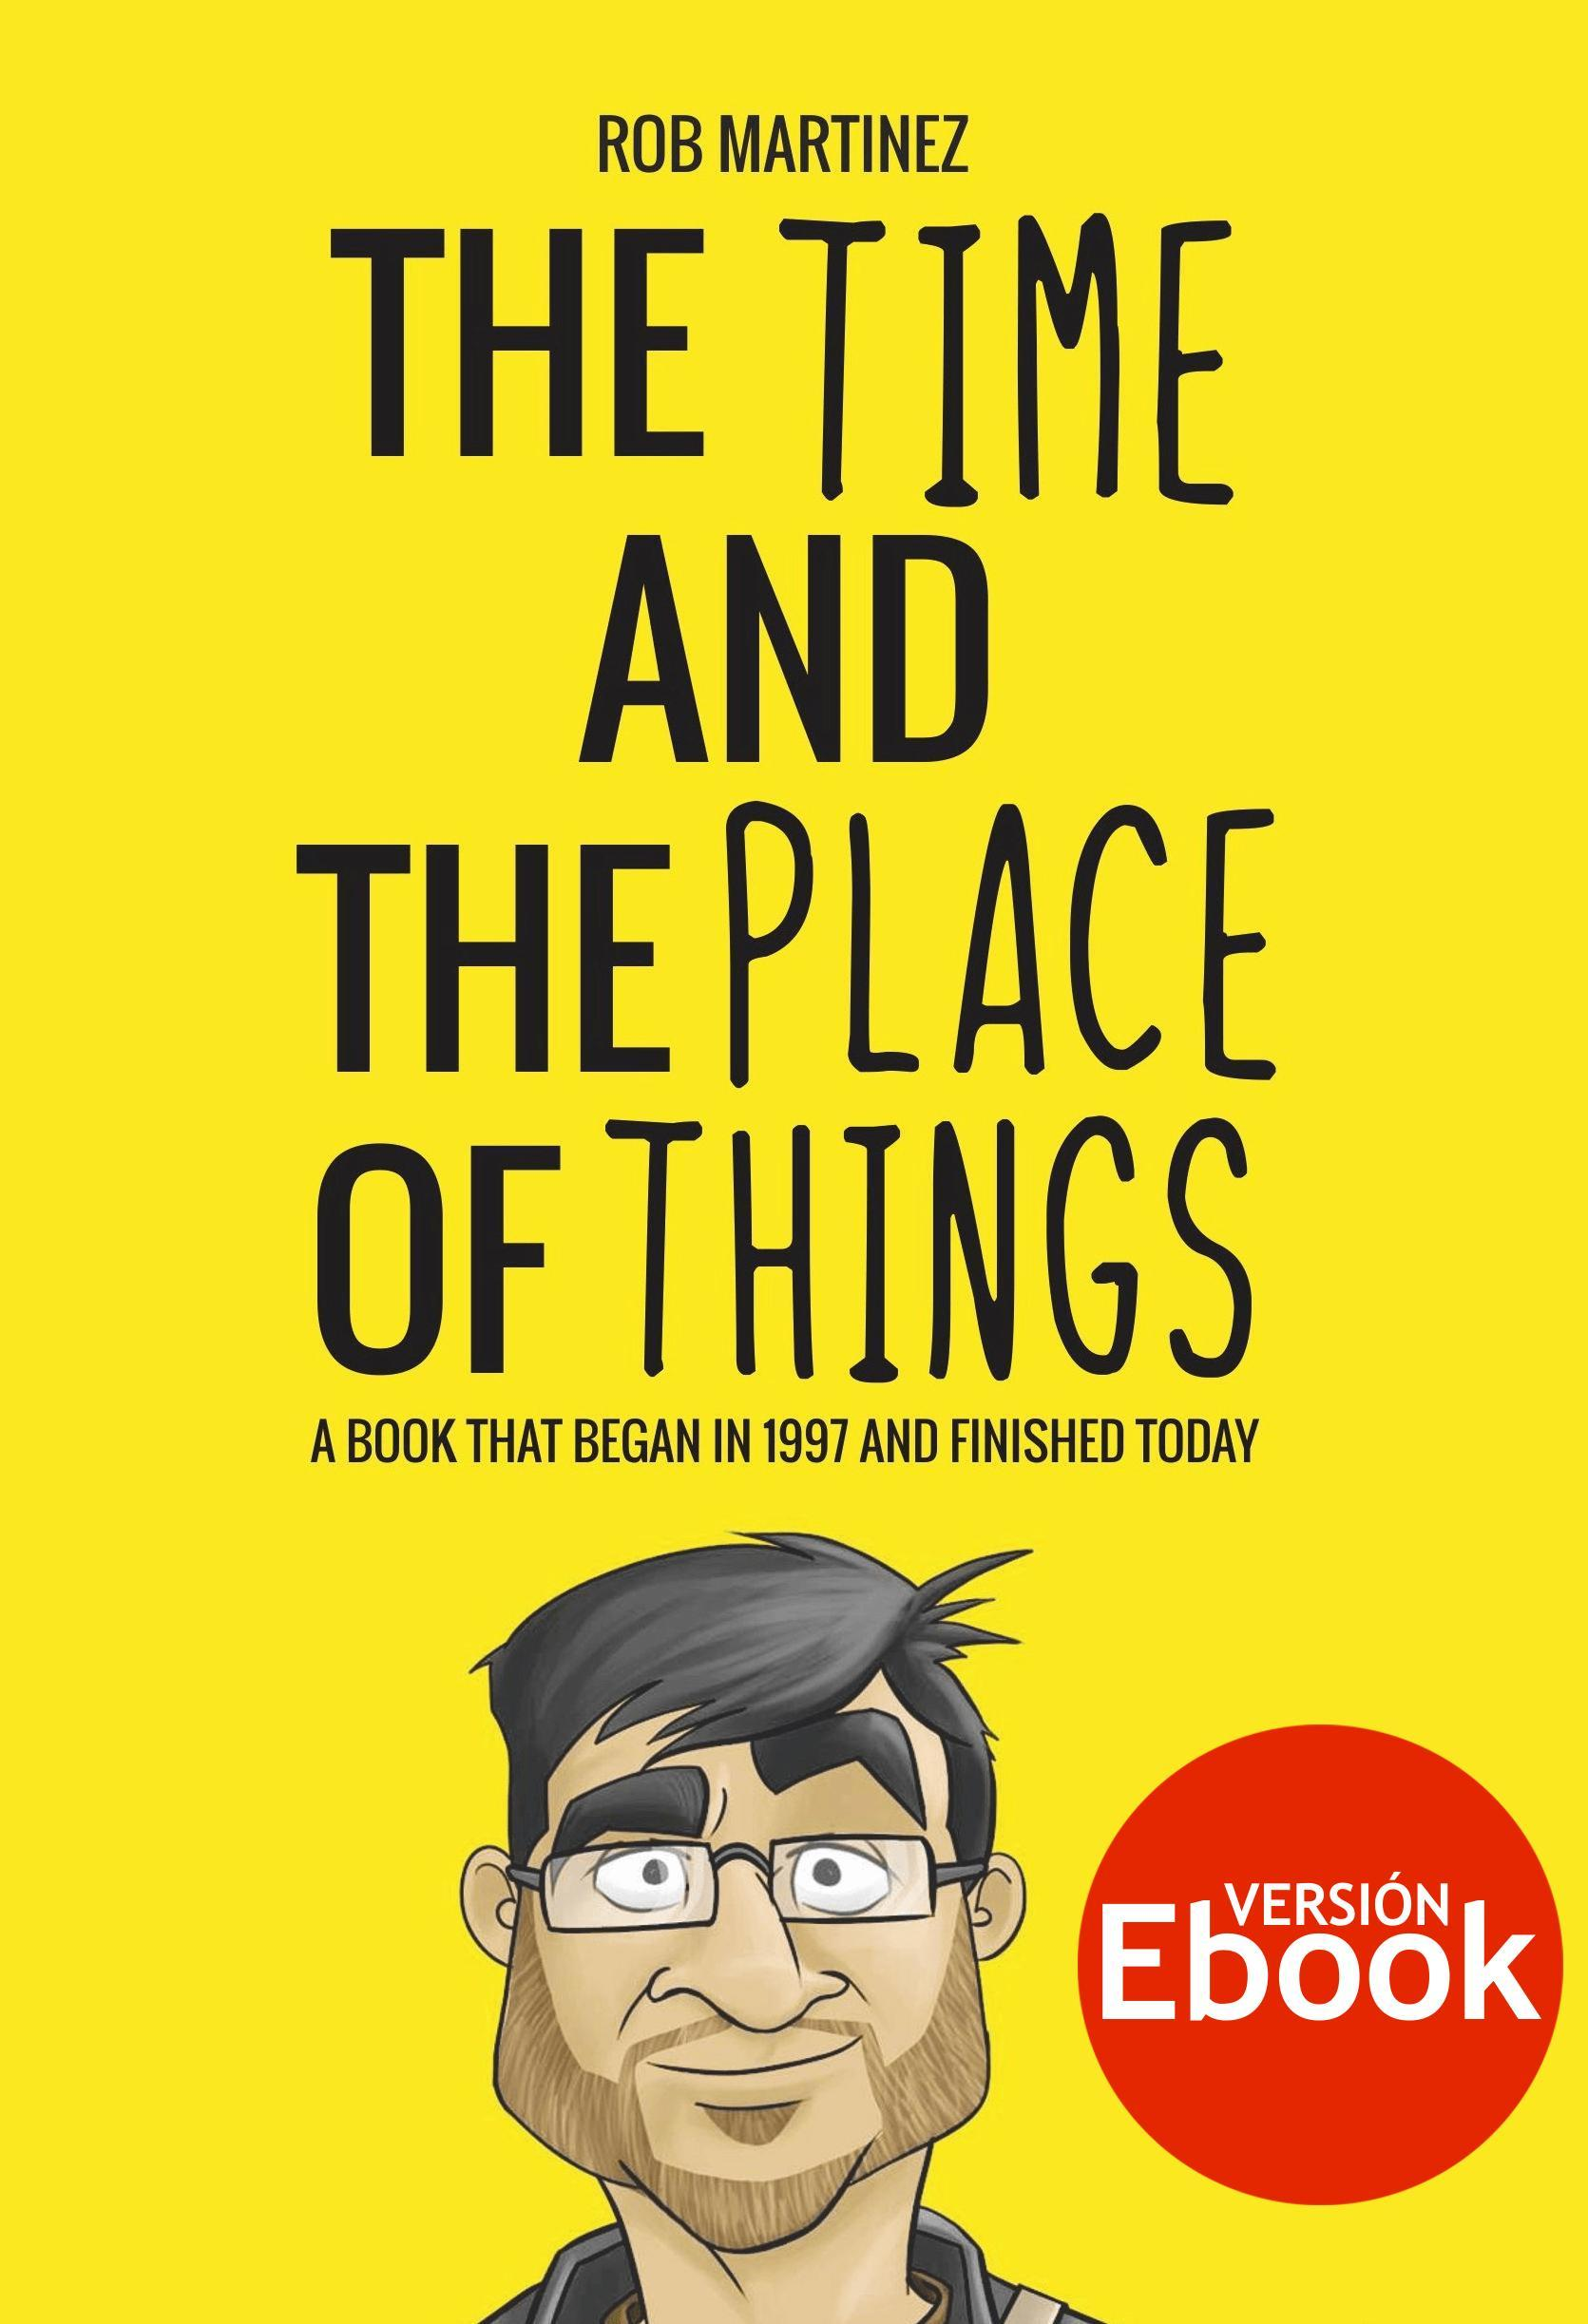 The time and the place of things